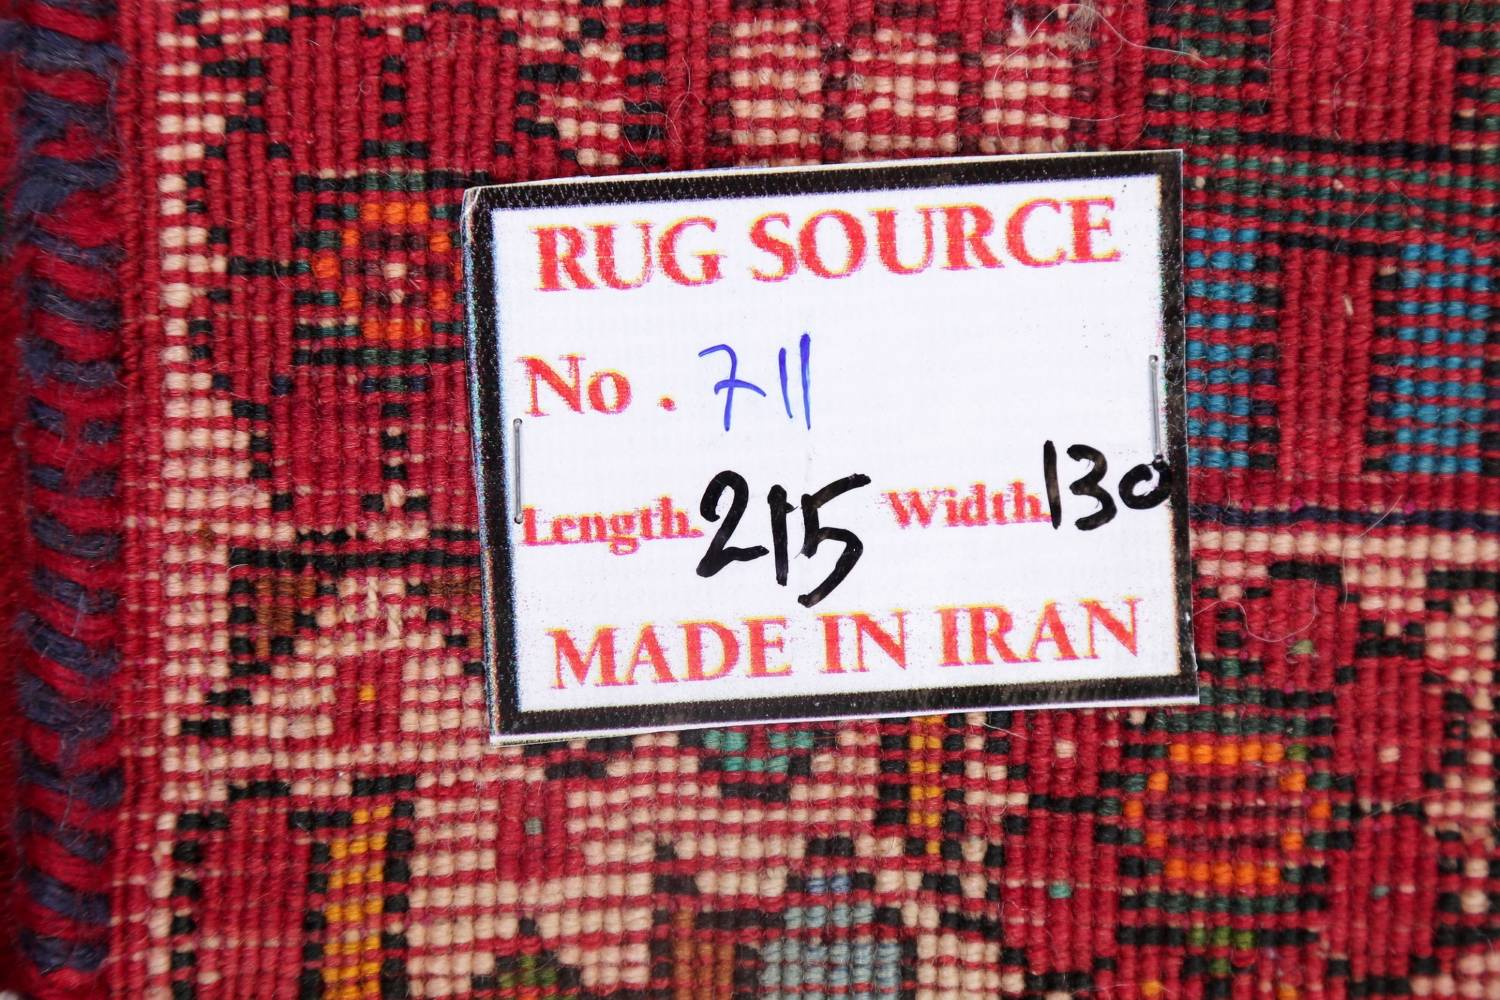 Vintage Red Pictorial Shiraz Persian Wool Rug 4x7 image 21